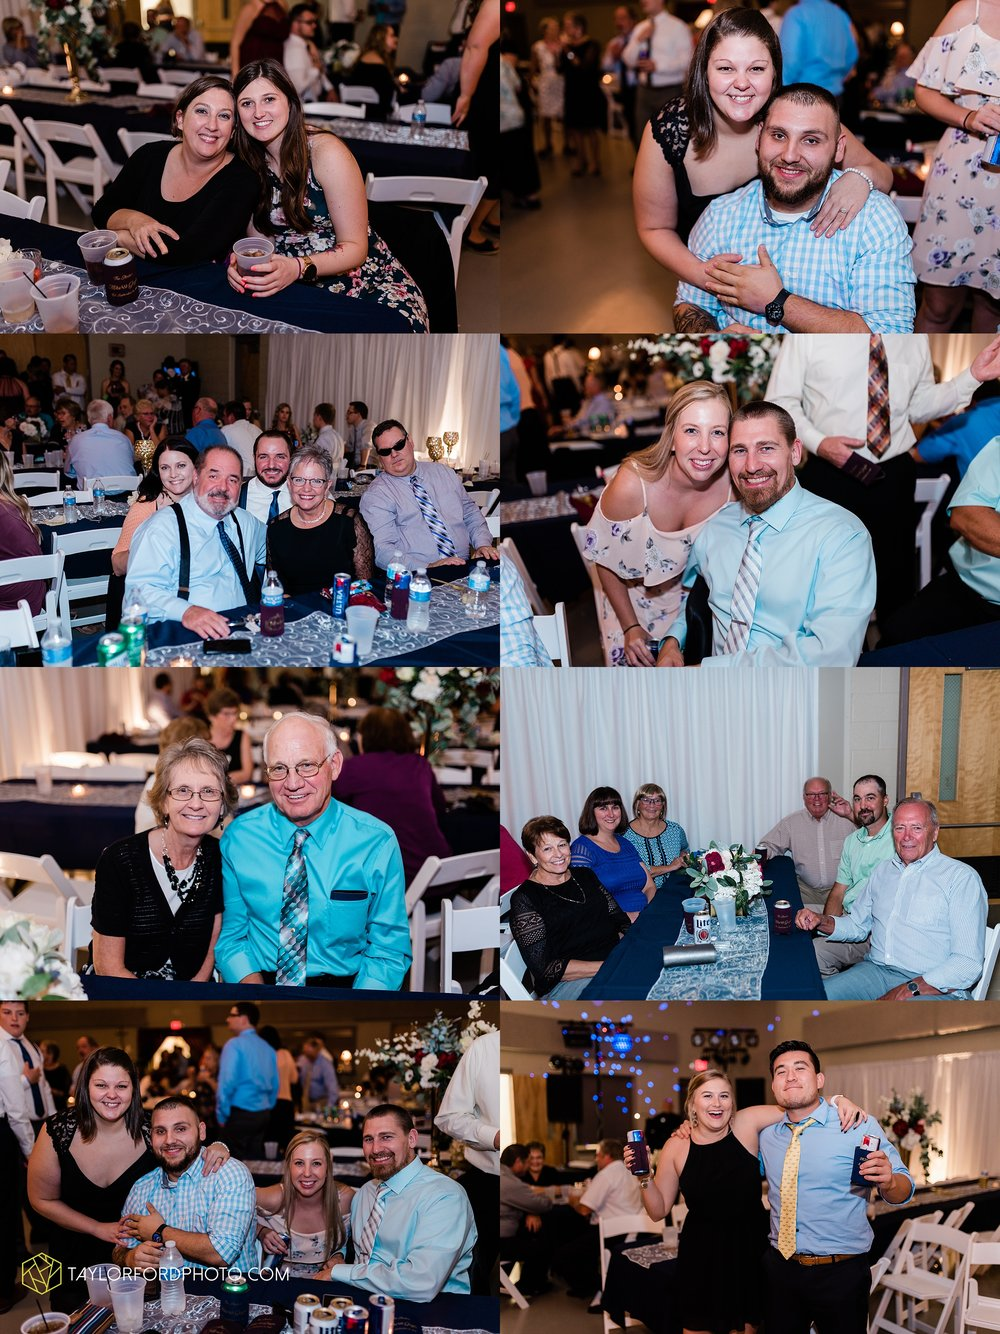 gayle-rayman-mike-steele-ottoville-ohio-wedding-immaculate-conception-parish-center-wedding-sycamore-lake-winery-wannamachers-photographer-taylor-ford-photography_0445.jpg